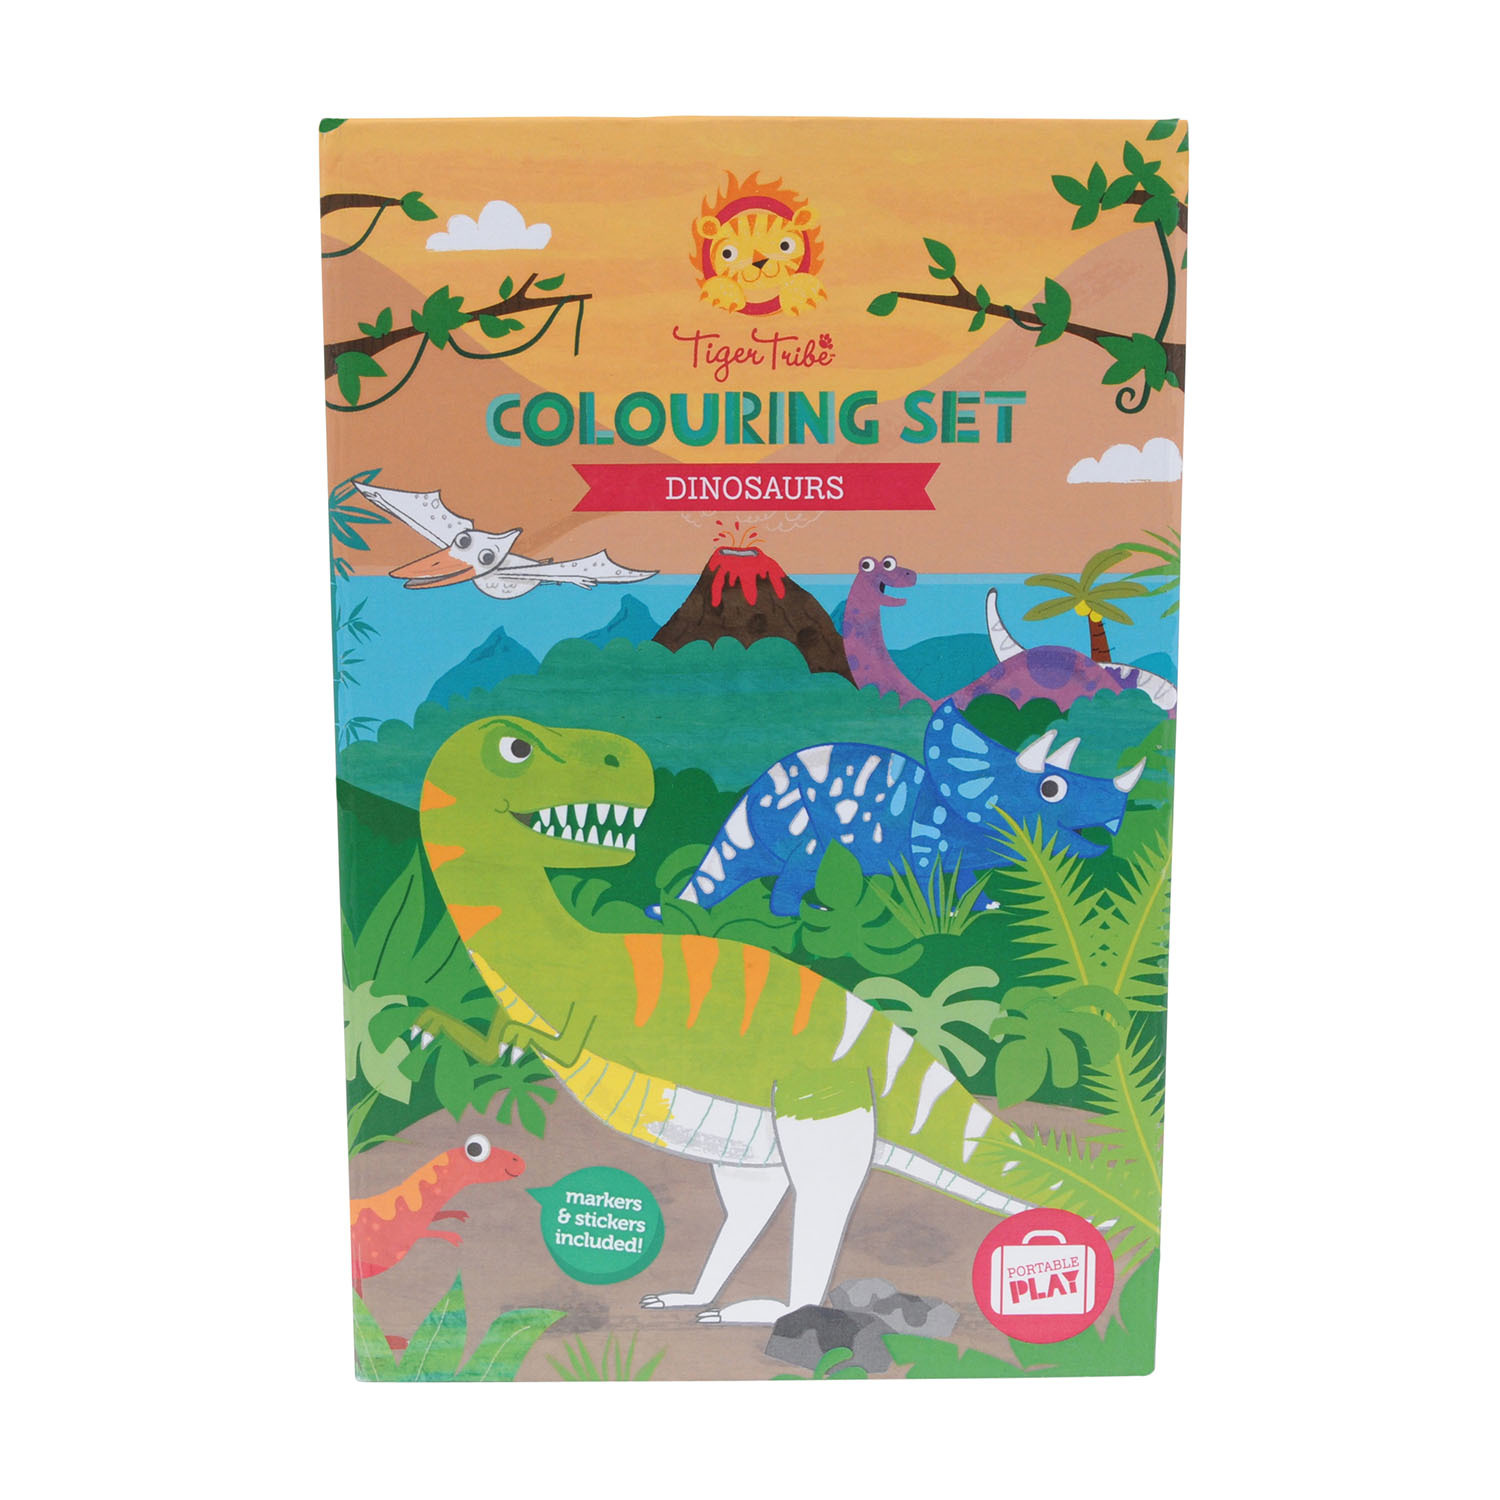 Colouring set - Dinosaur by Tiger Tribe